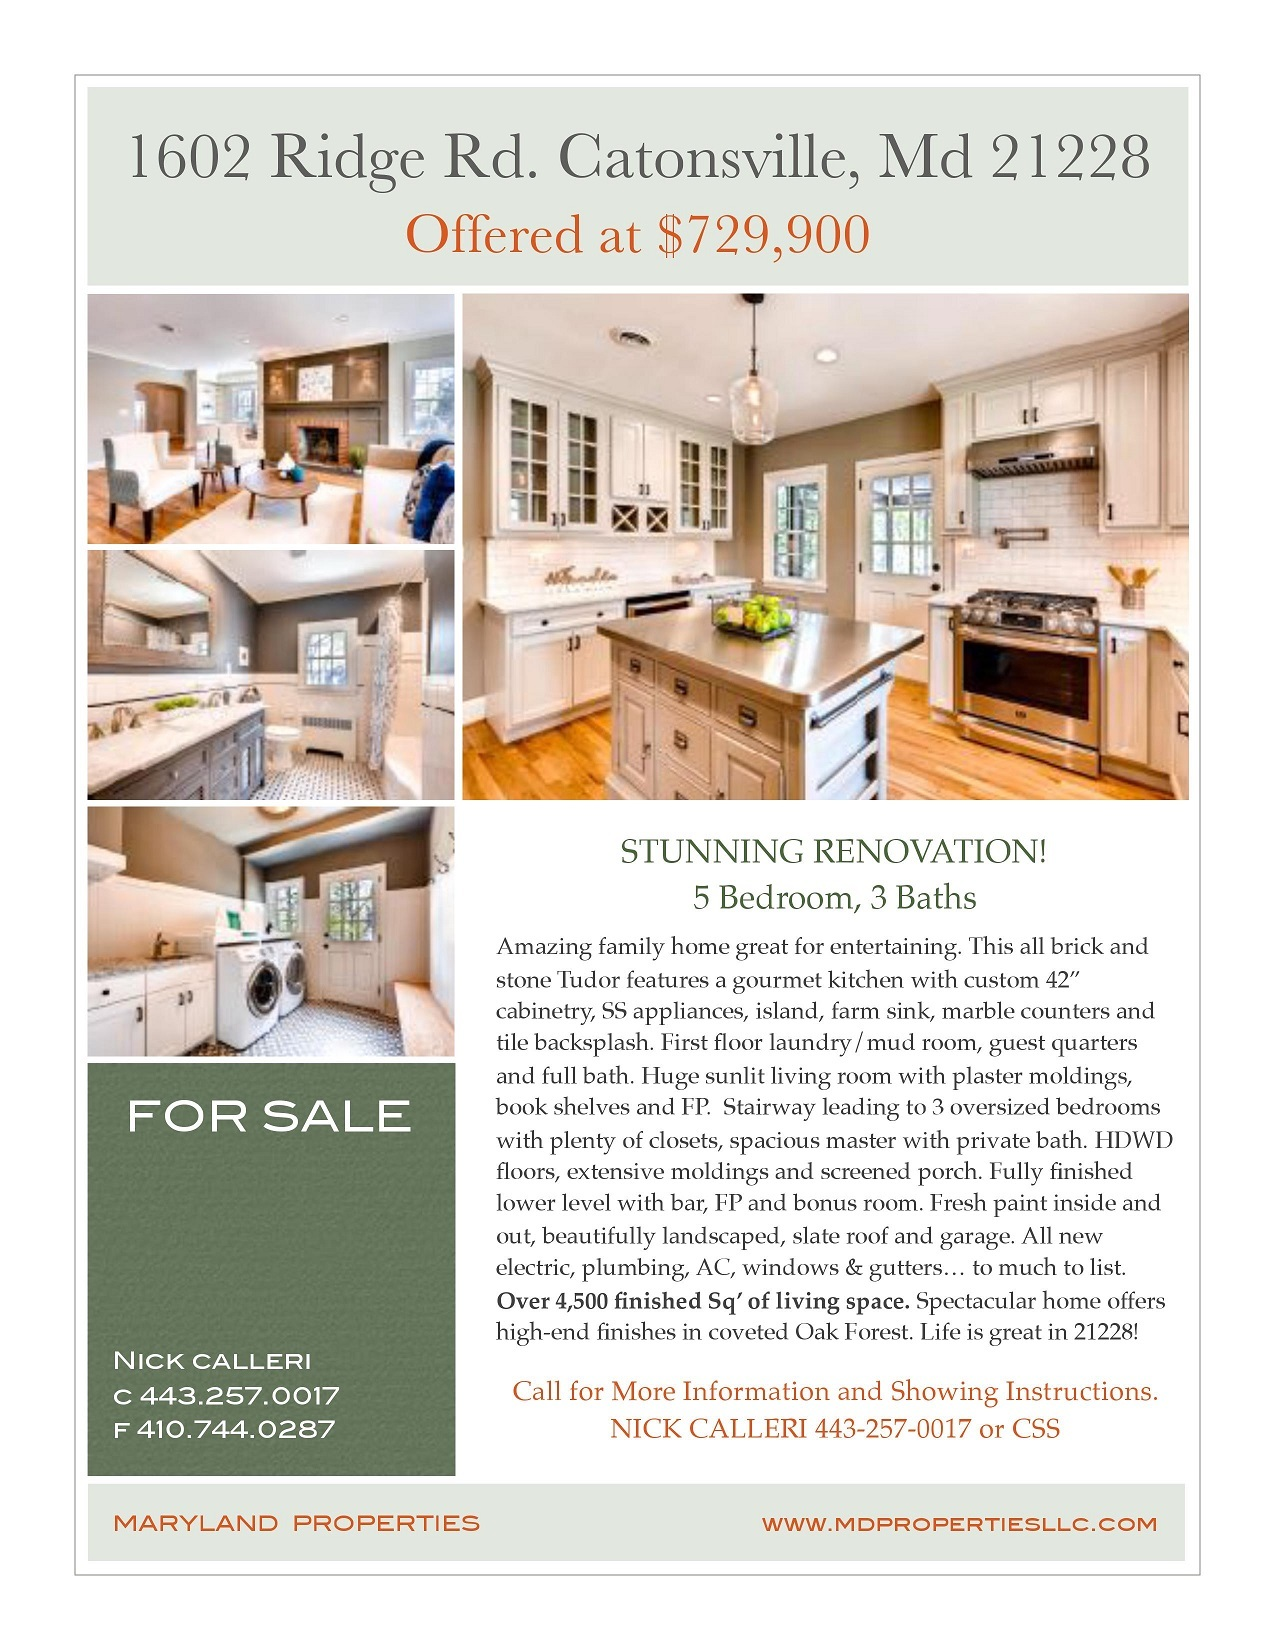 Tudor home for sale in Catonsville